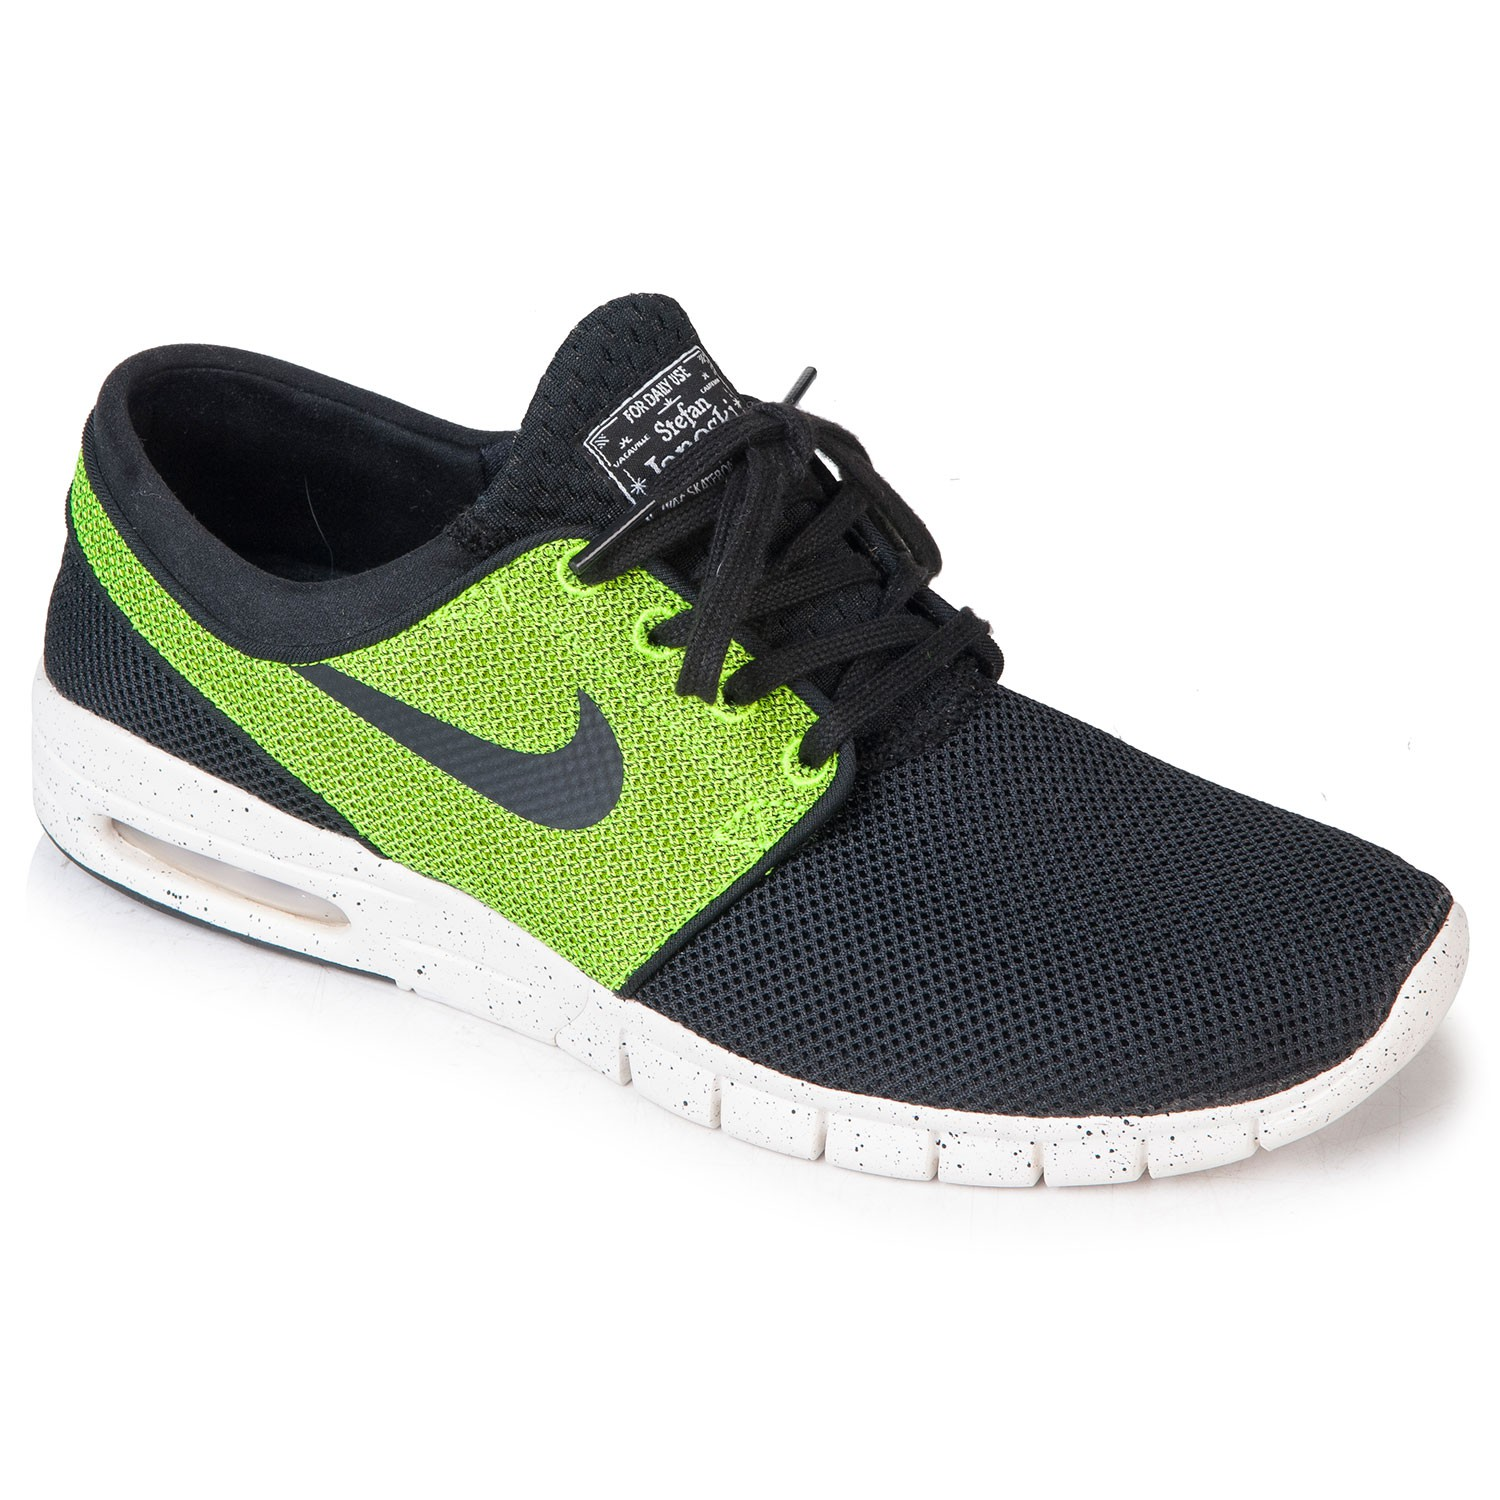 nike sb nike stefan janoski max black black volt ivory. Black Bedroom Furniture Sets. Home Design Ideas